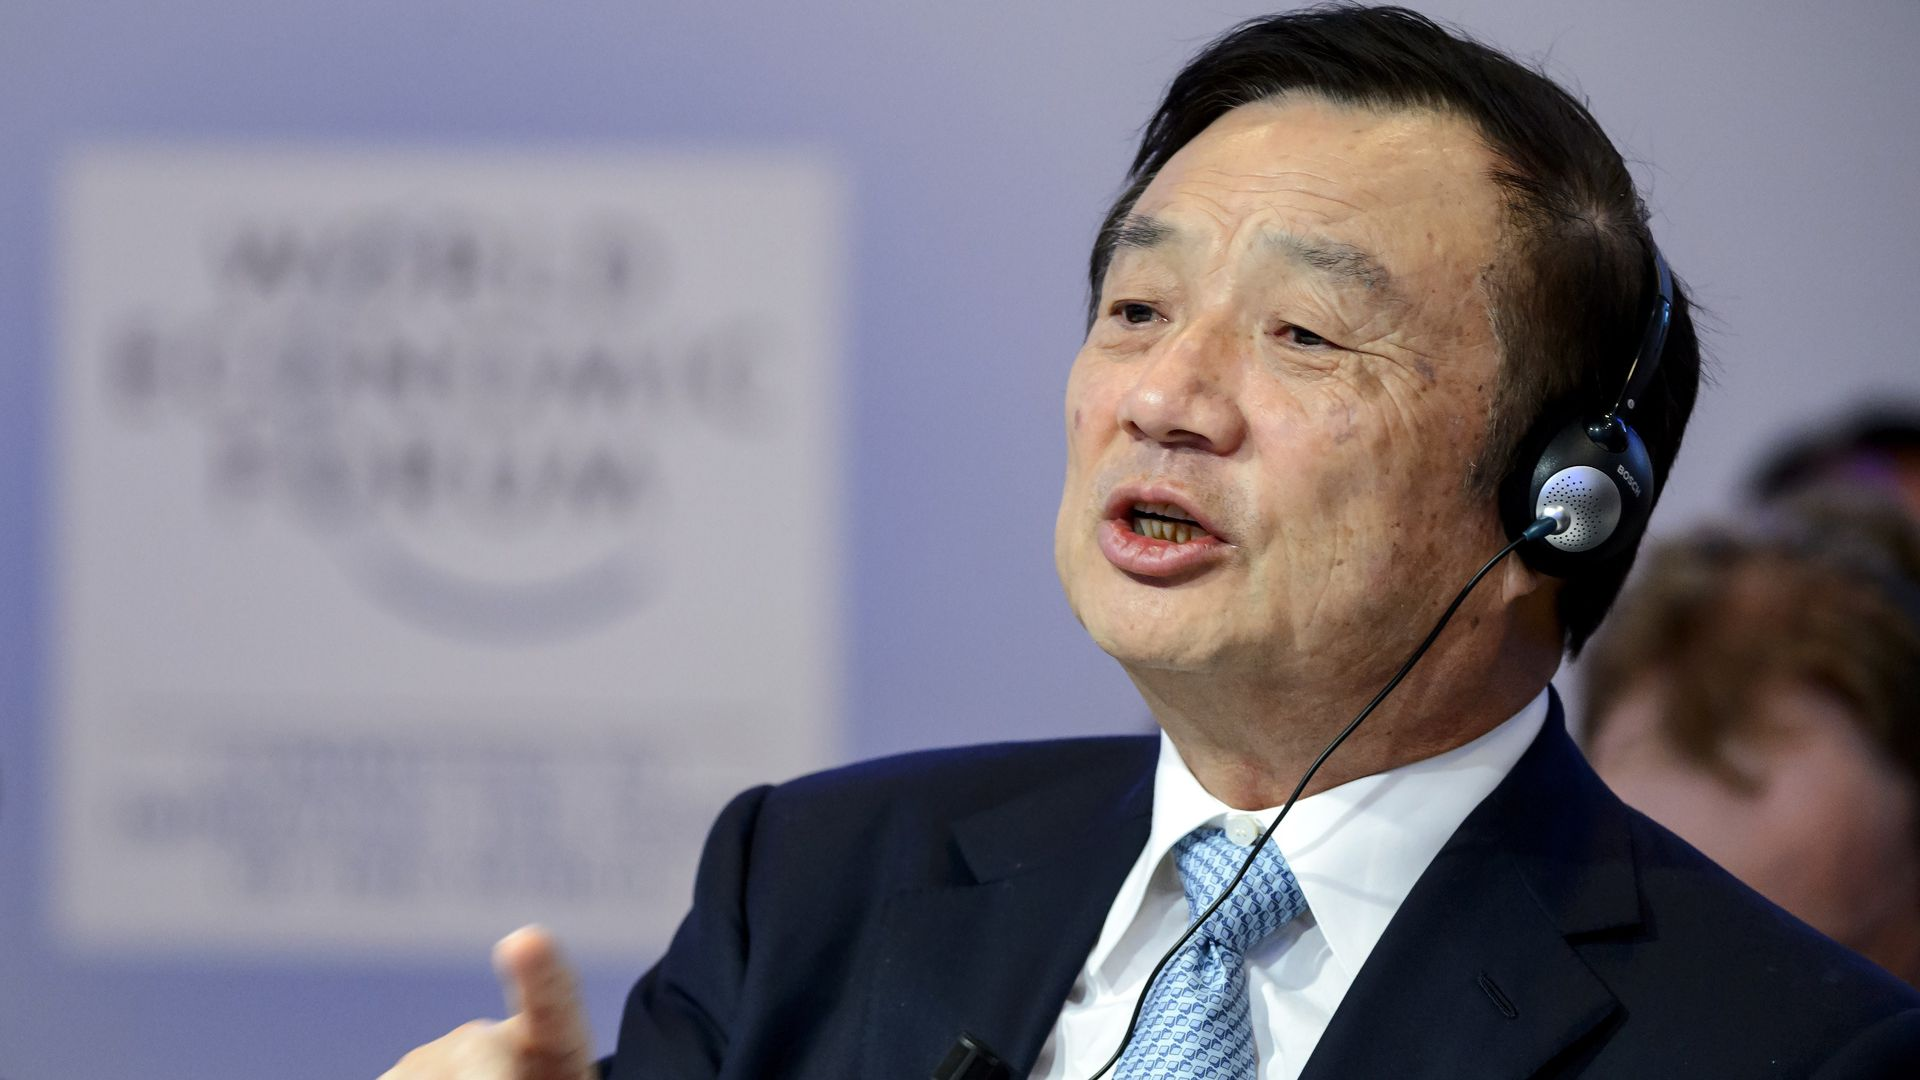 Huawei founder with translation headset on